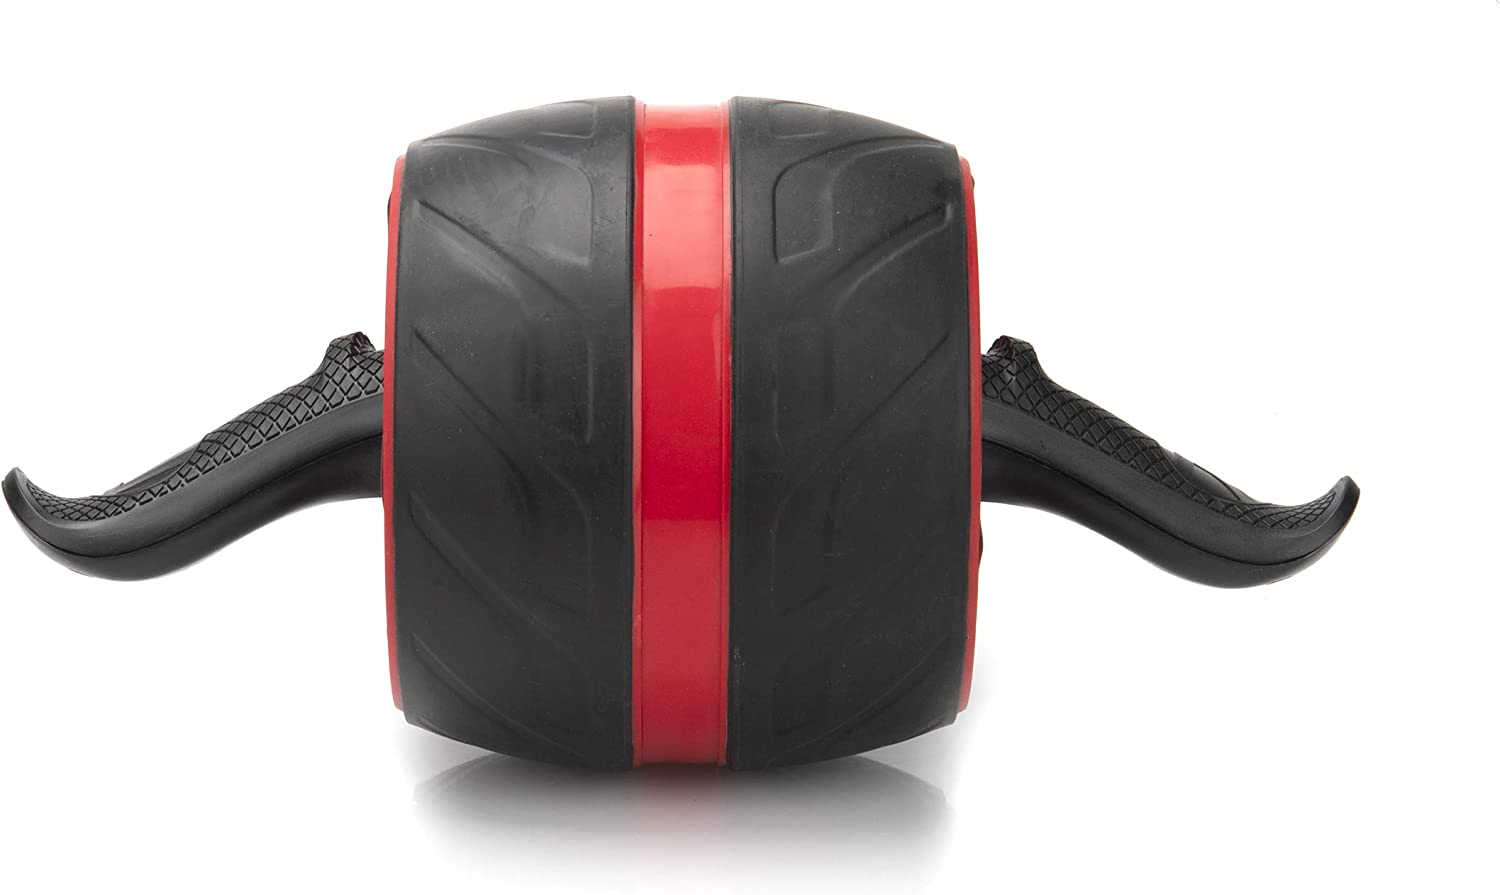 Mind Reader Ab Roller with Ergonomic Handles, Ultra-Wide, Home Fitness Wheel, Non-Slip Rubberized, Red/Black